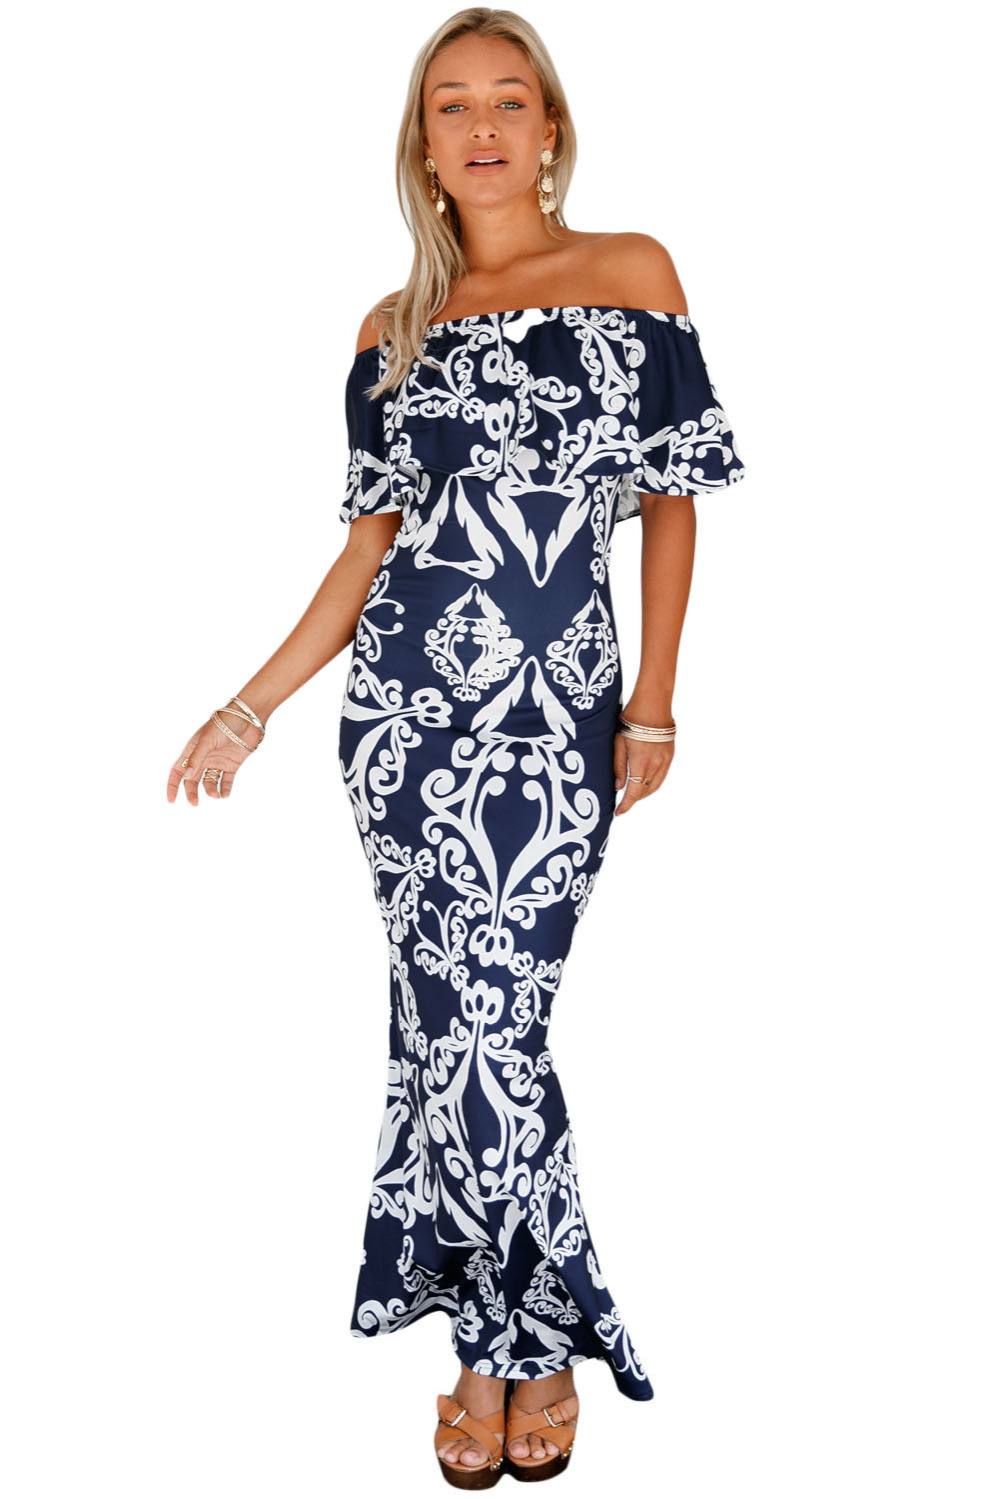 sexy Bohemian Brief Night Clubwear work Formal party Ankle-Length White Tendril Print Navy Off-the-shoulder Maxi Dress 61189-6